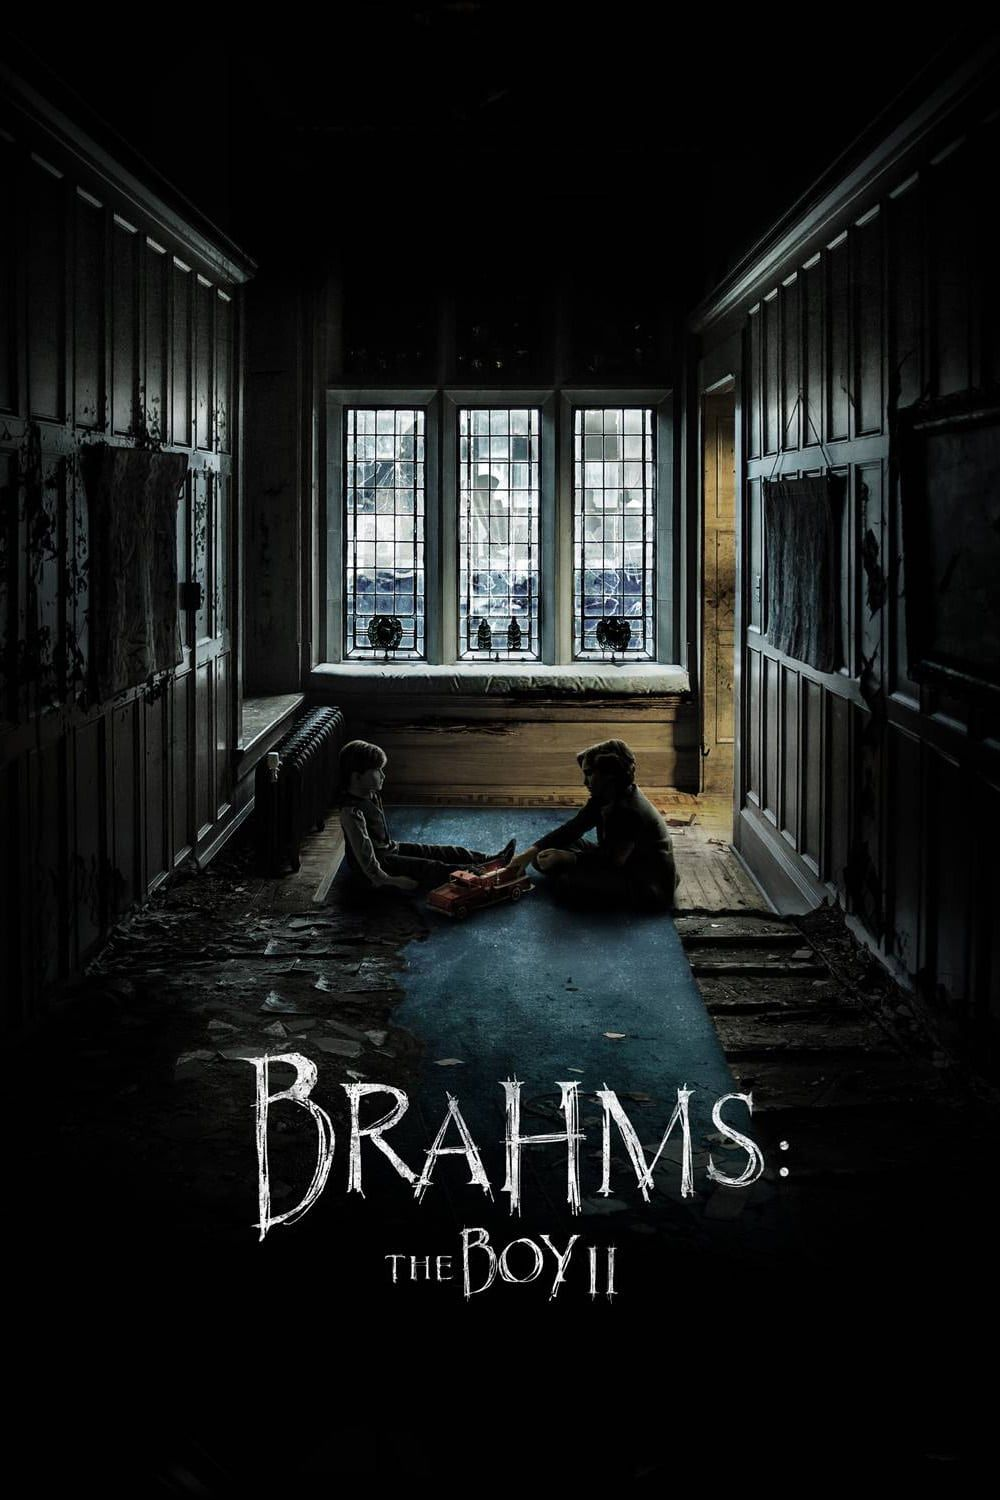 Download Brahms The Boy Ii Film Completo In Italiano Free Movies Online Full Movies Movies For Boys